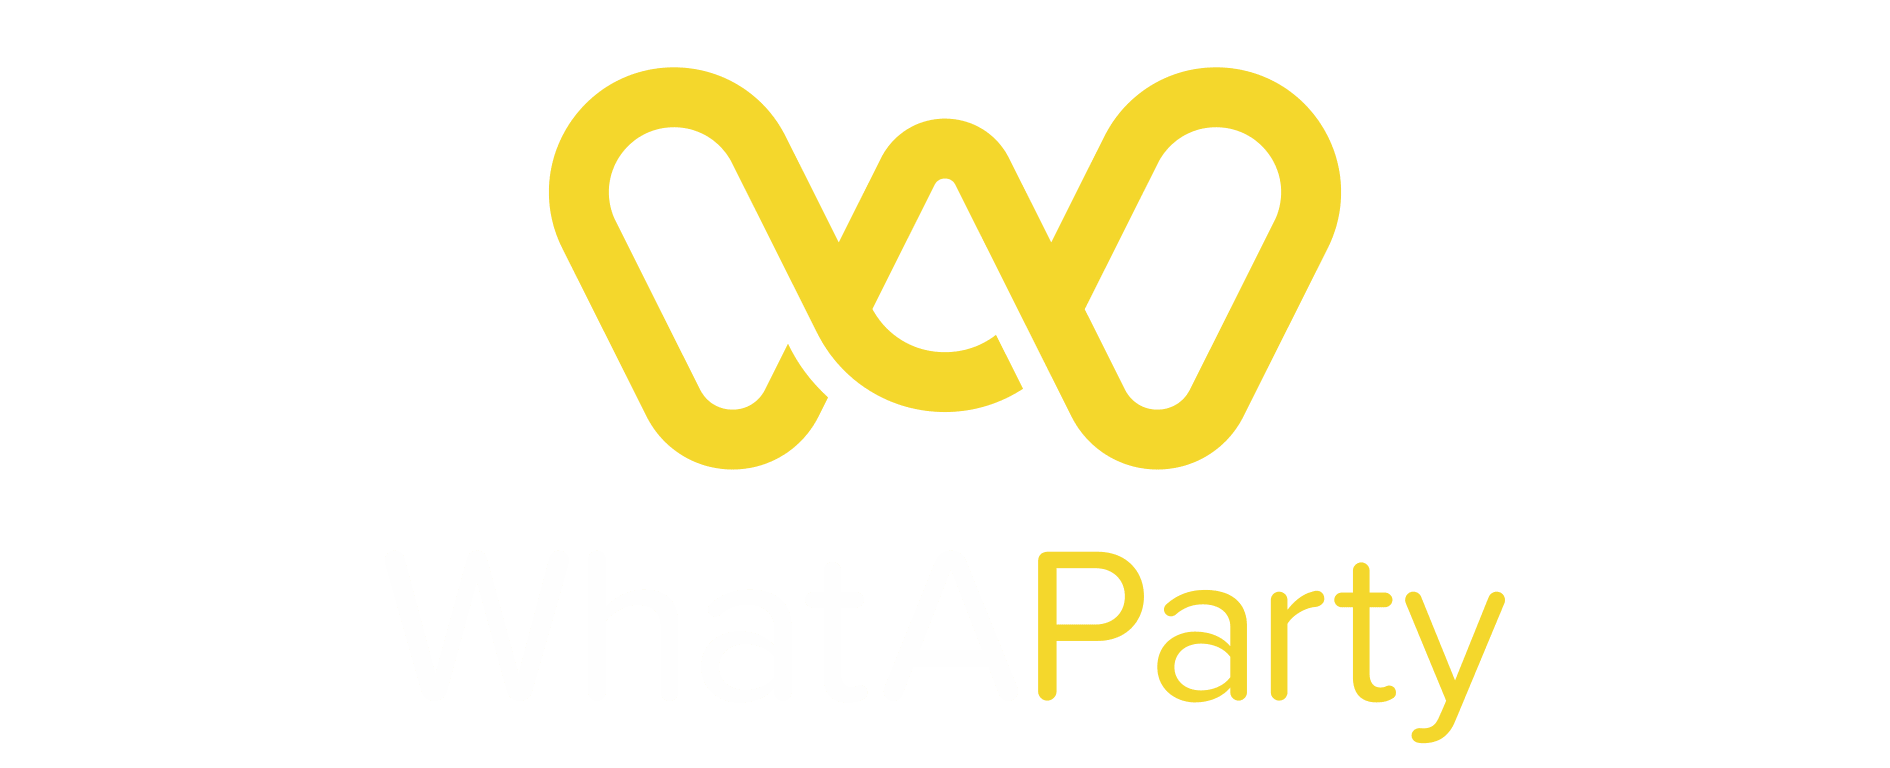 what a party logo